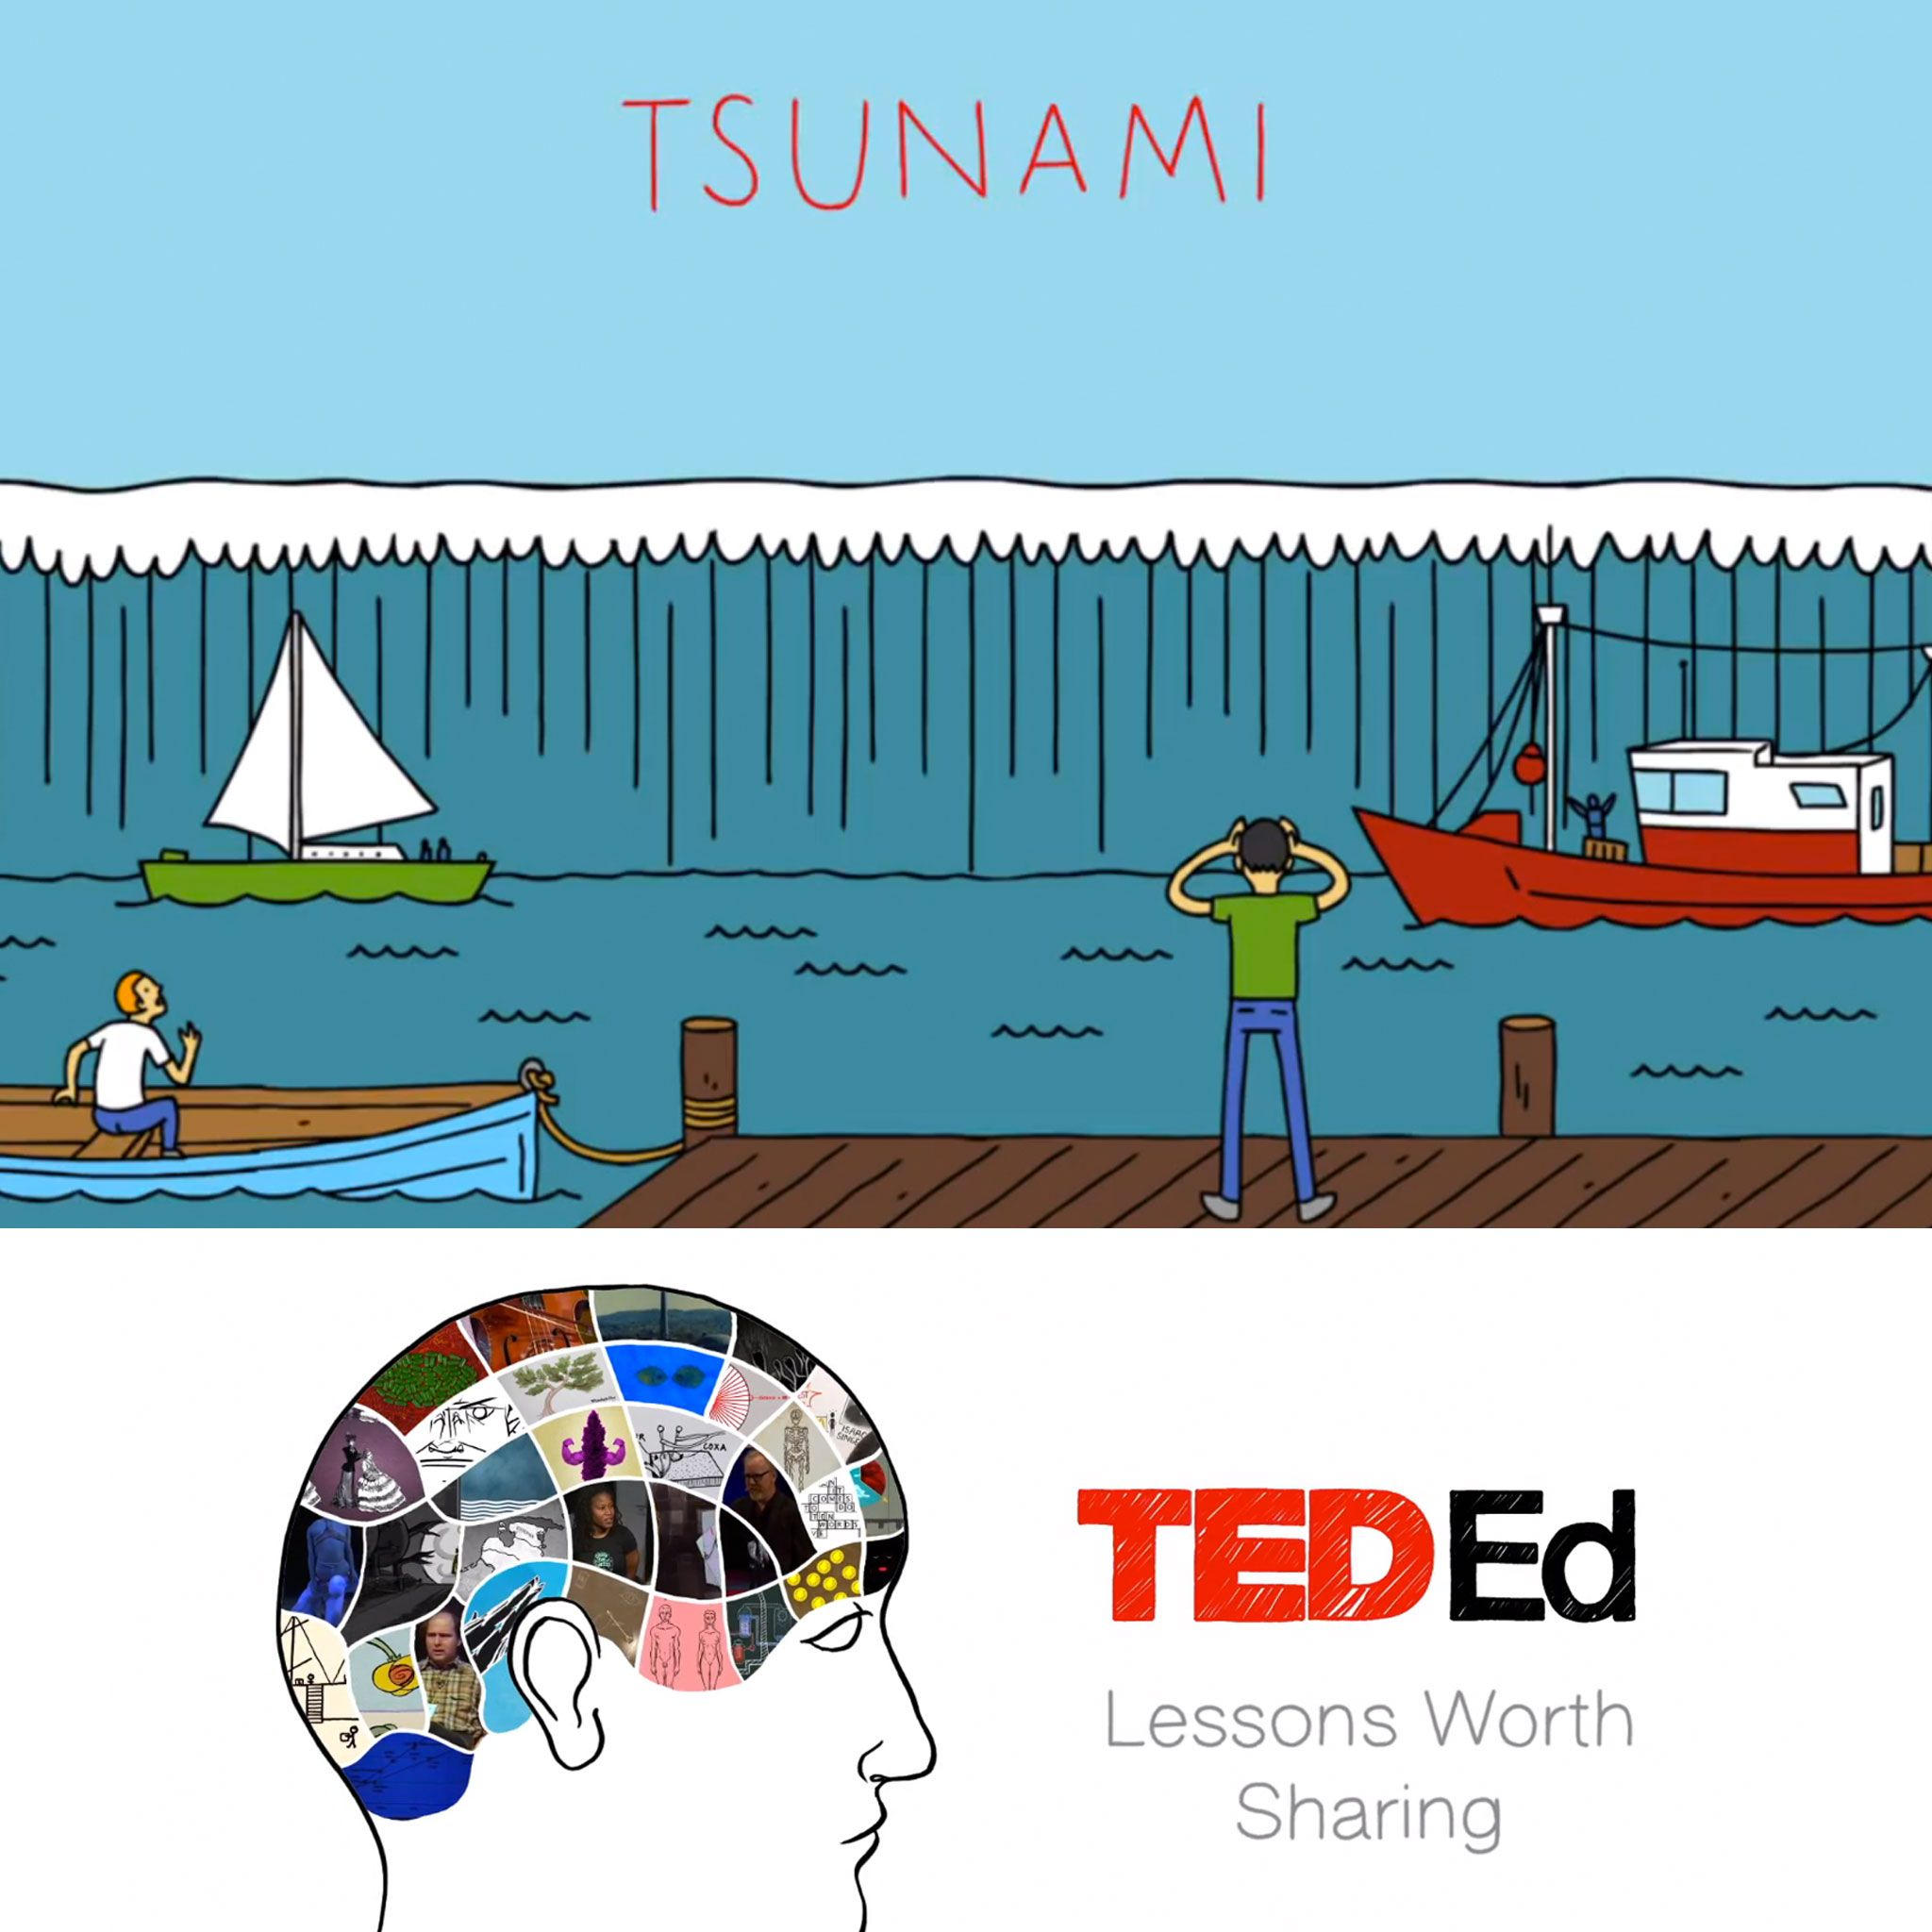 Ted Education All About Tsunamis